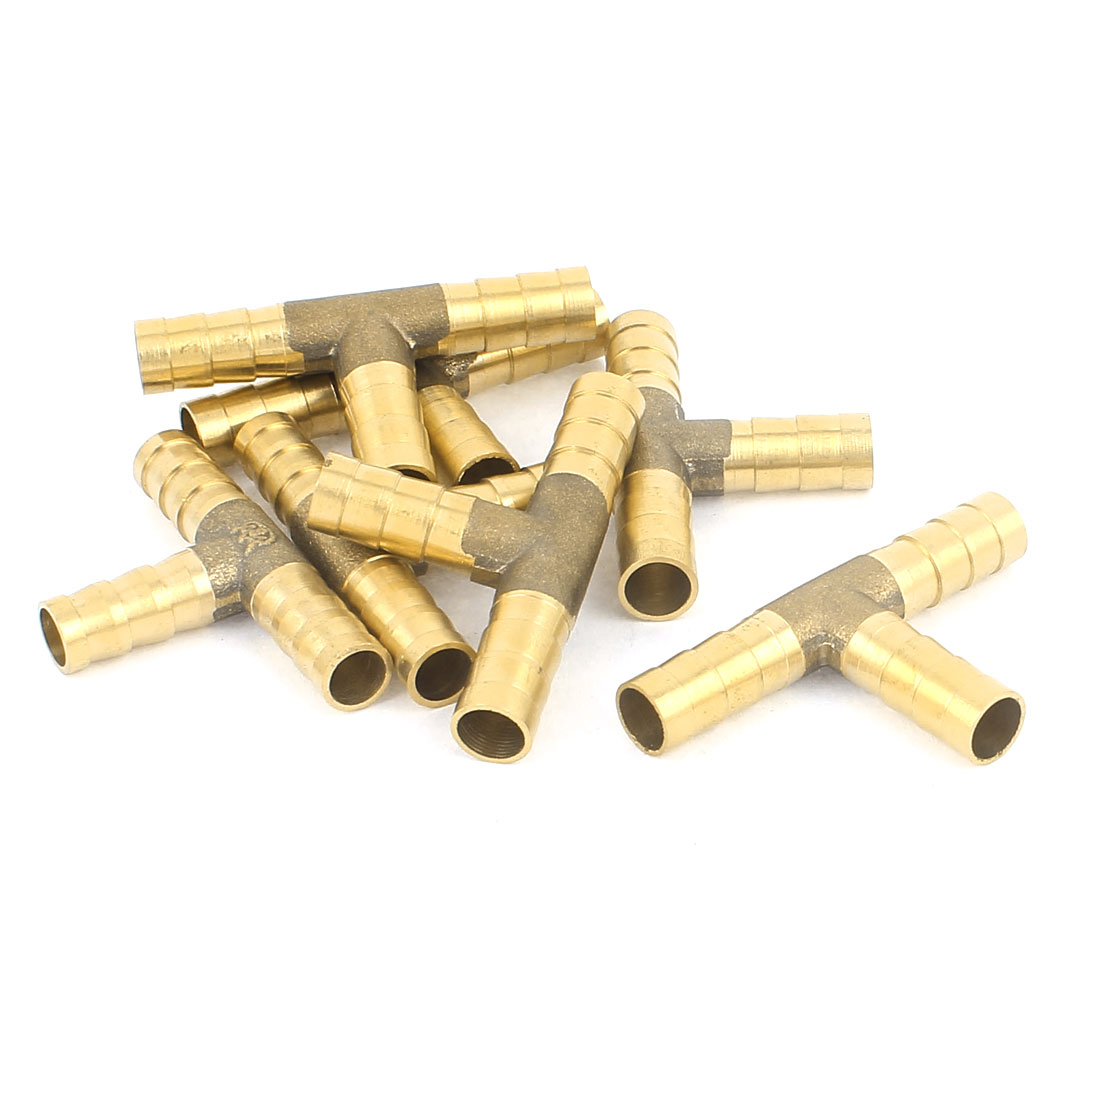 7Pcs 3 Way T-Shaped 8.5mm Tube Connector Brass Fuel Hose Barb Fittings